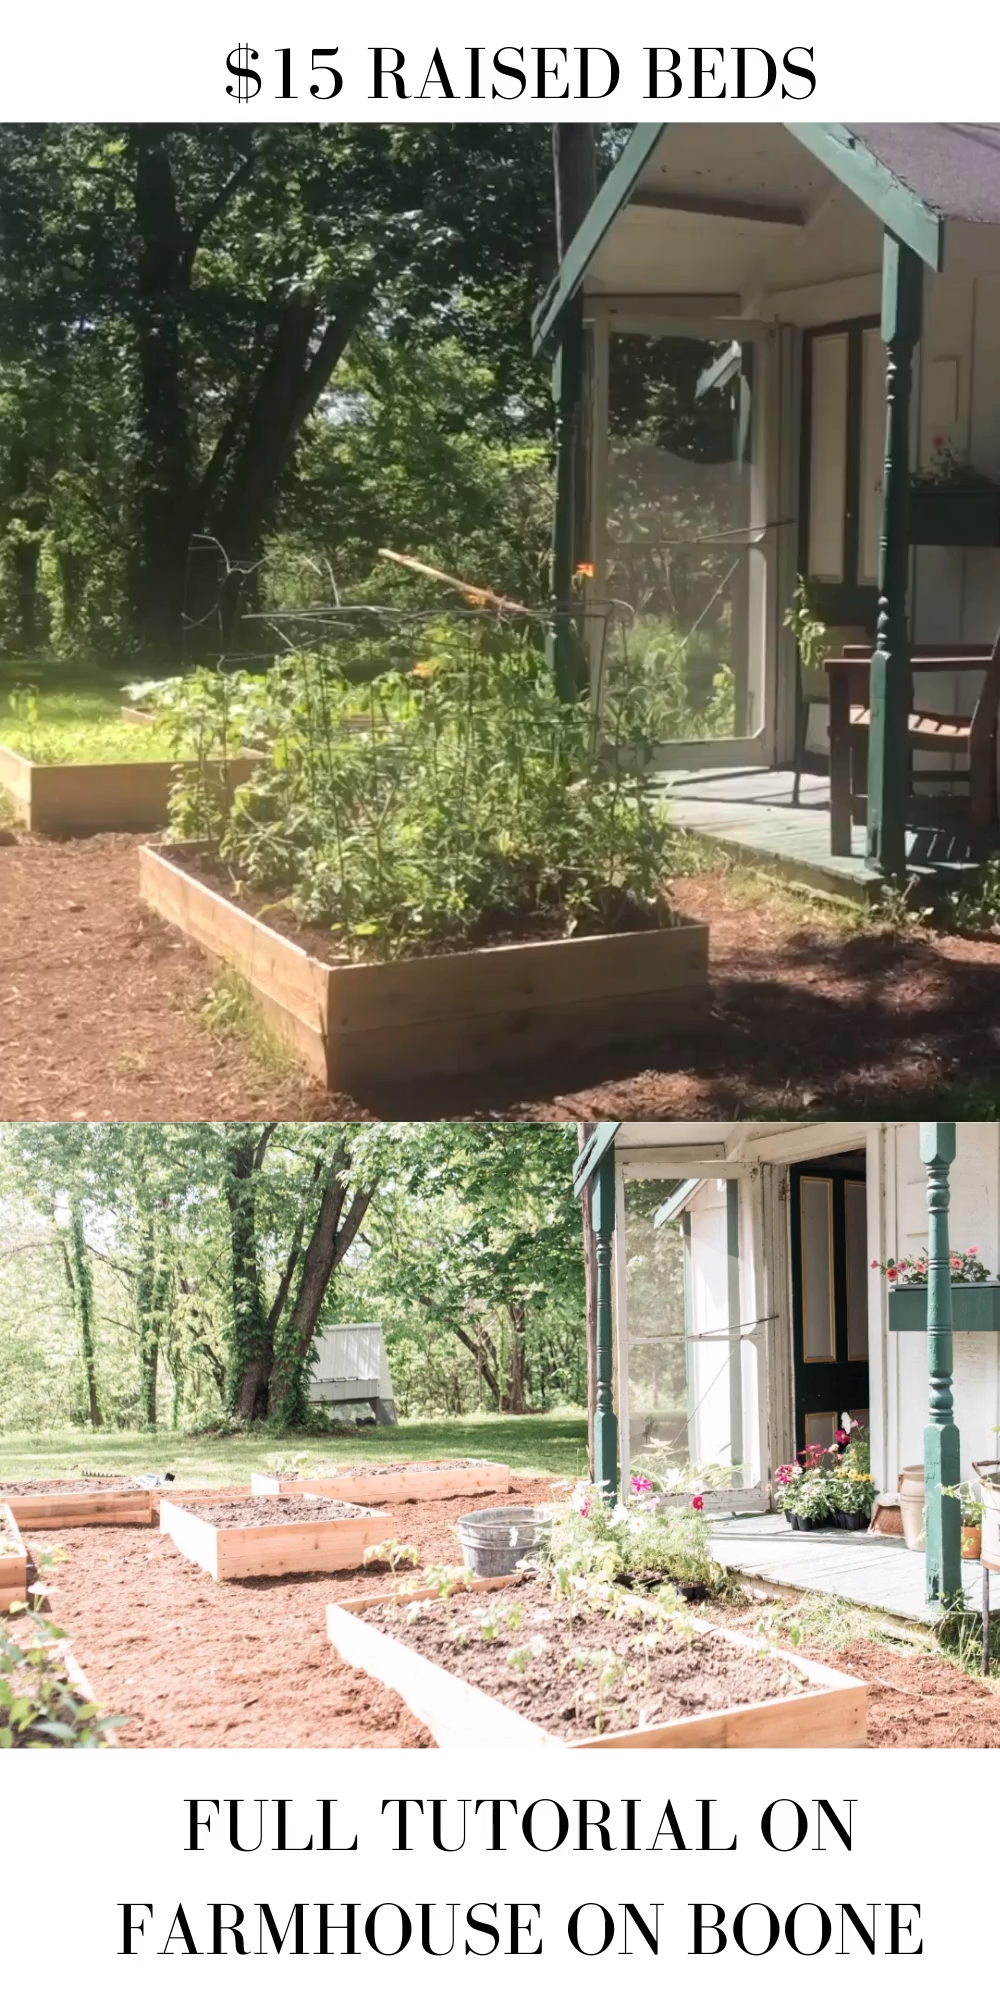 Learn how to build a raised garden bed for less than $15 per box. With just a few materials and a little bit of time, you can put together these cheap raised garden beds. #raisedbeds #garden